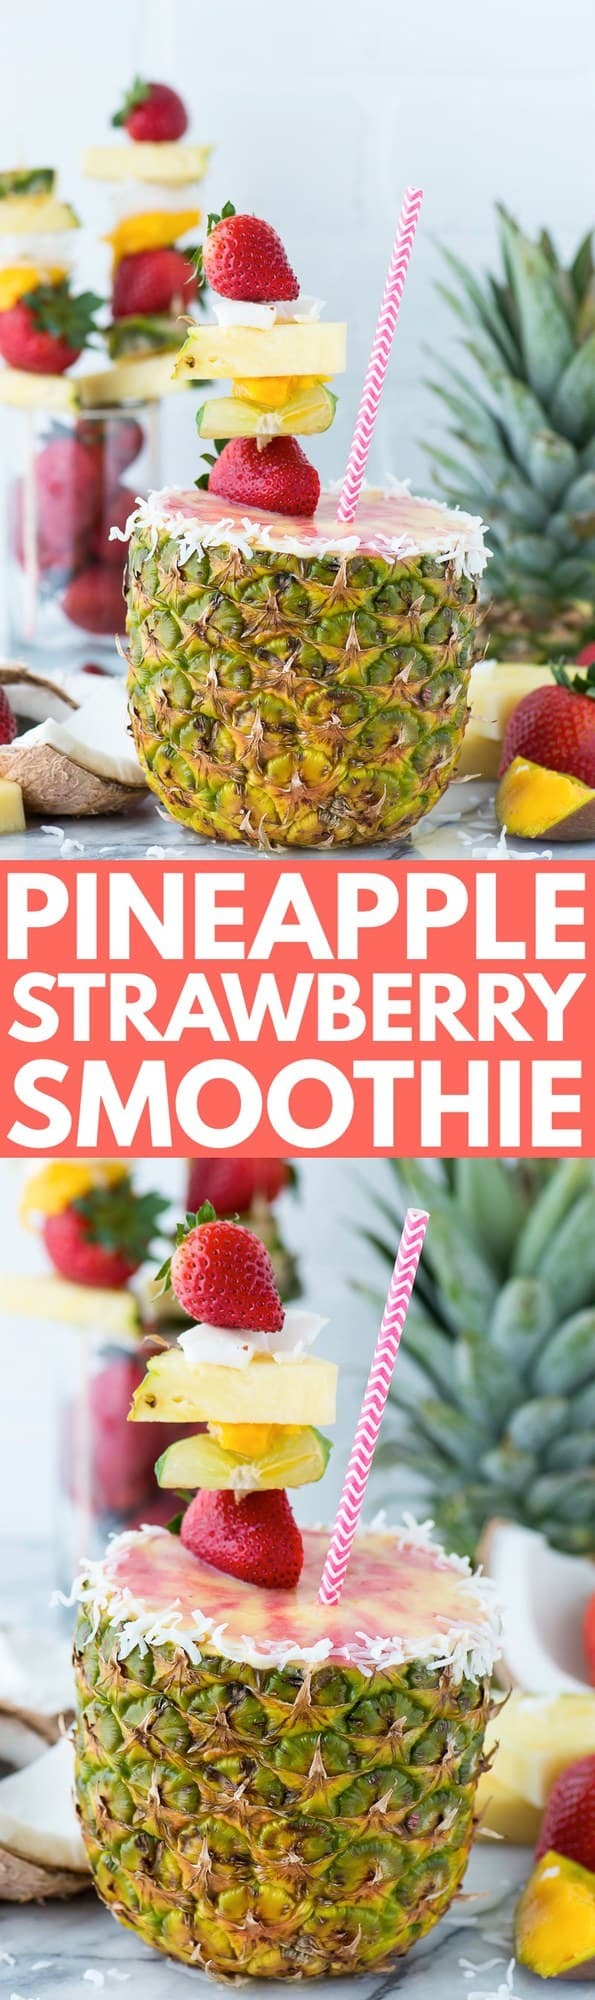 Fresh pineapple strawberry smoothie in a pineapple cup!